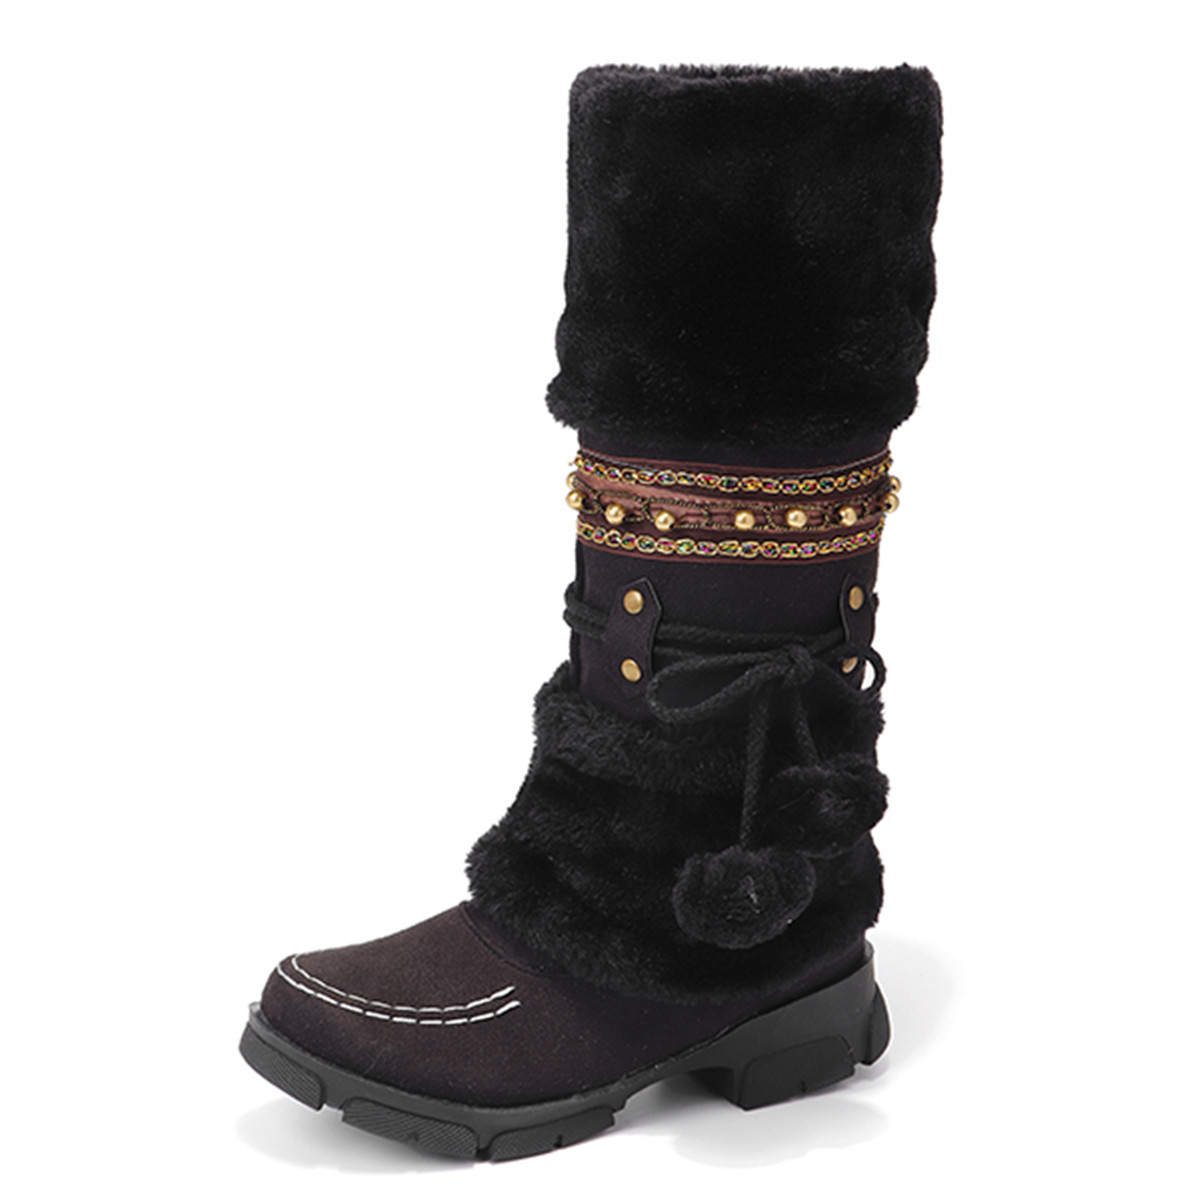 Boots - LOSTISY Large Size Fluffy Keep Warm Winter Snow